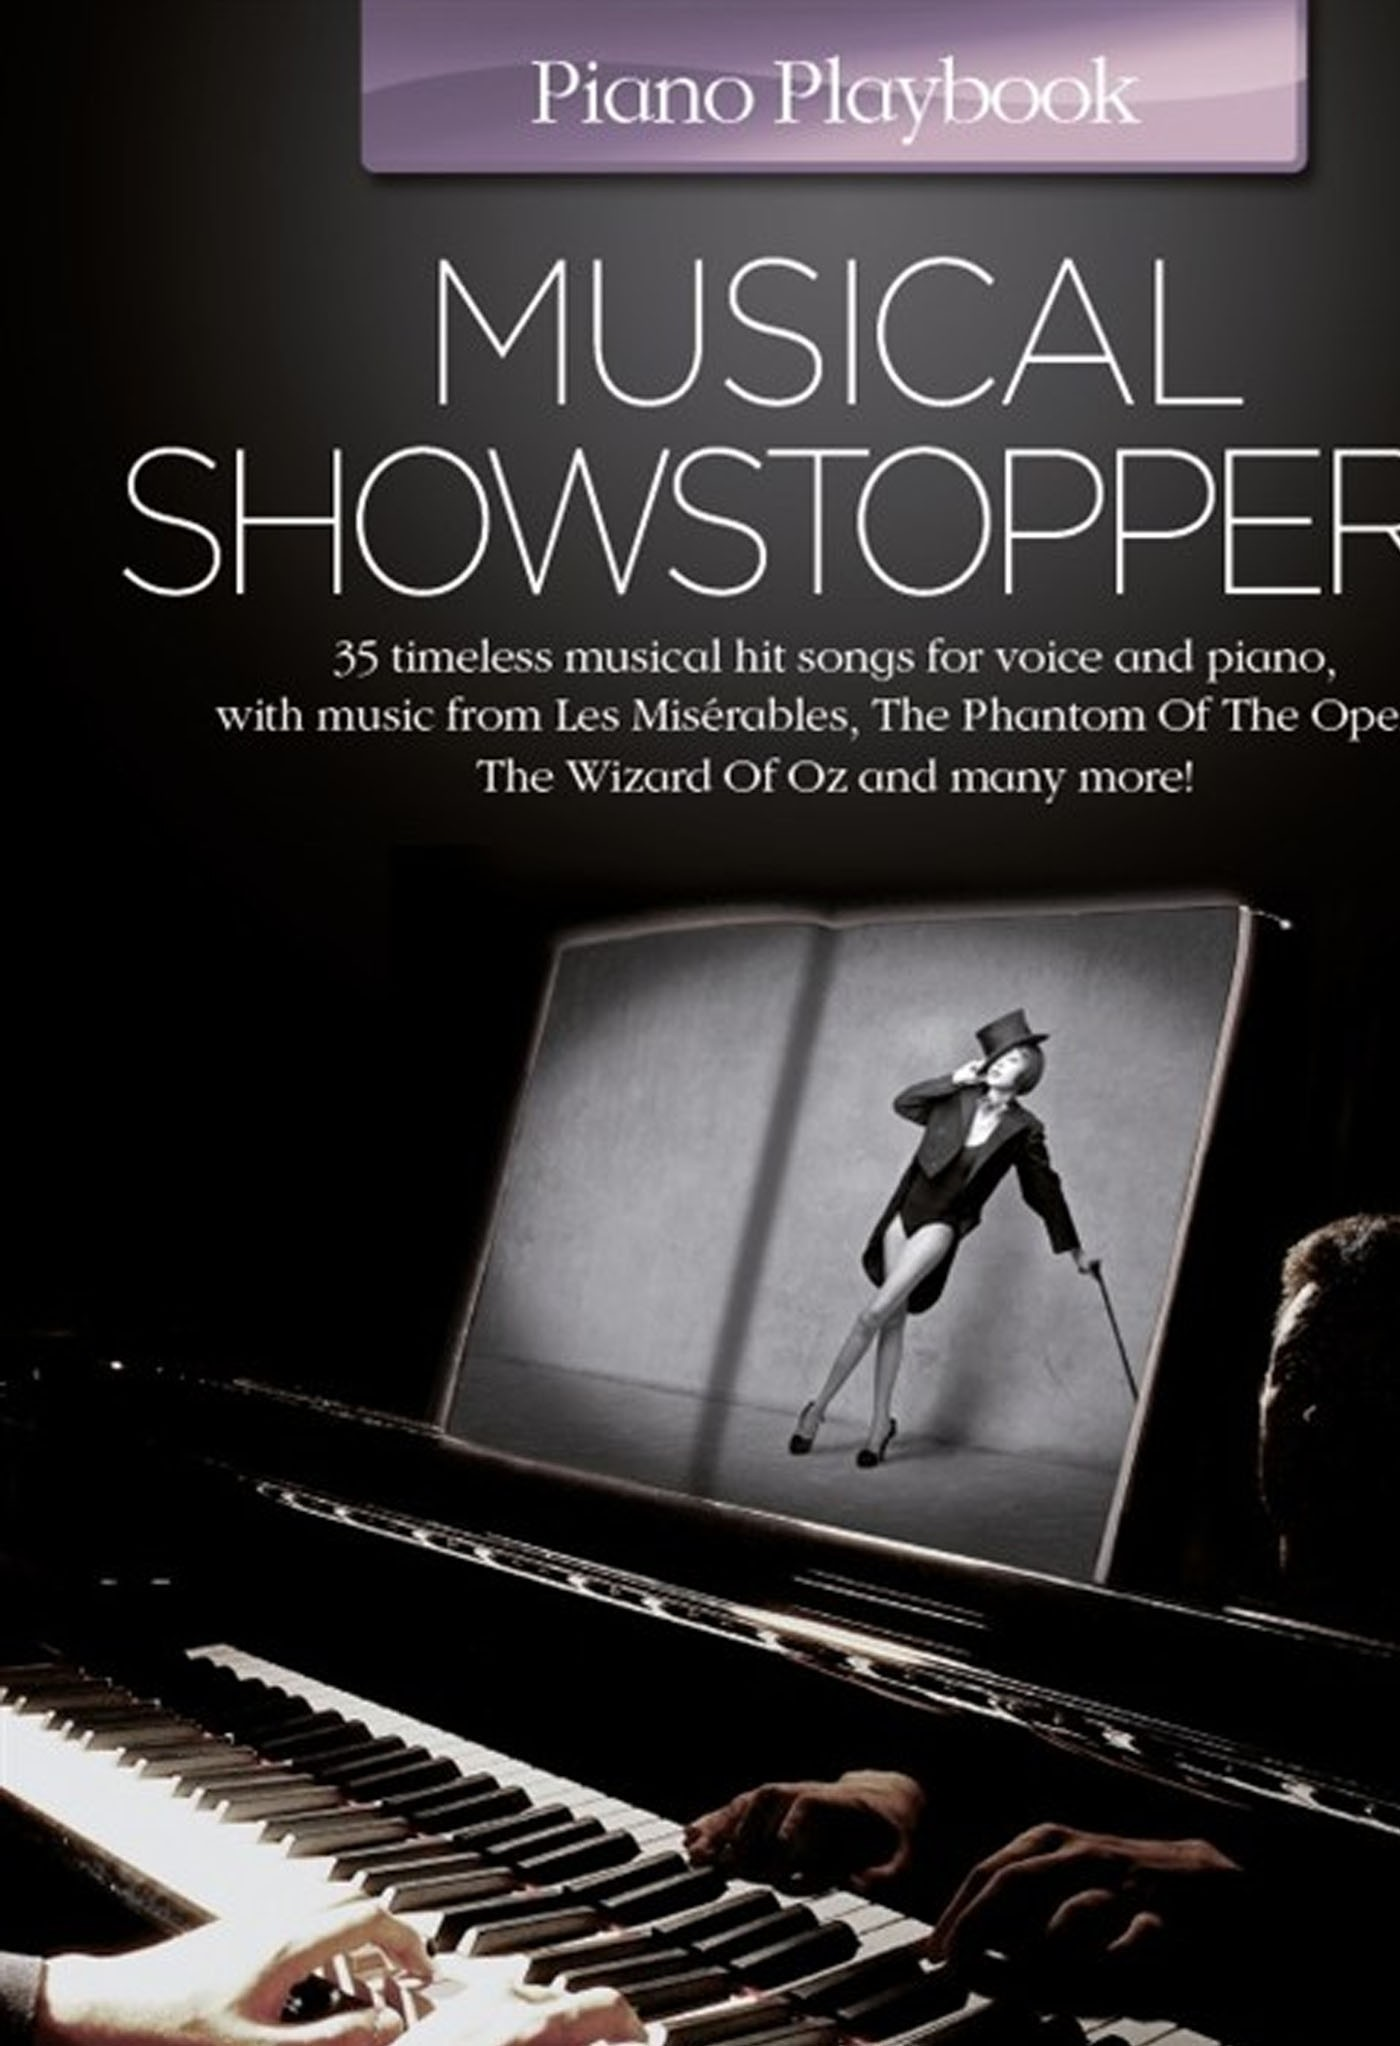 Piano Playbook Musical Showstoppers 35 Timeless Songs Voice Spiral Bound S168